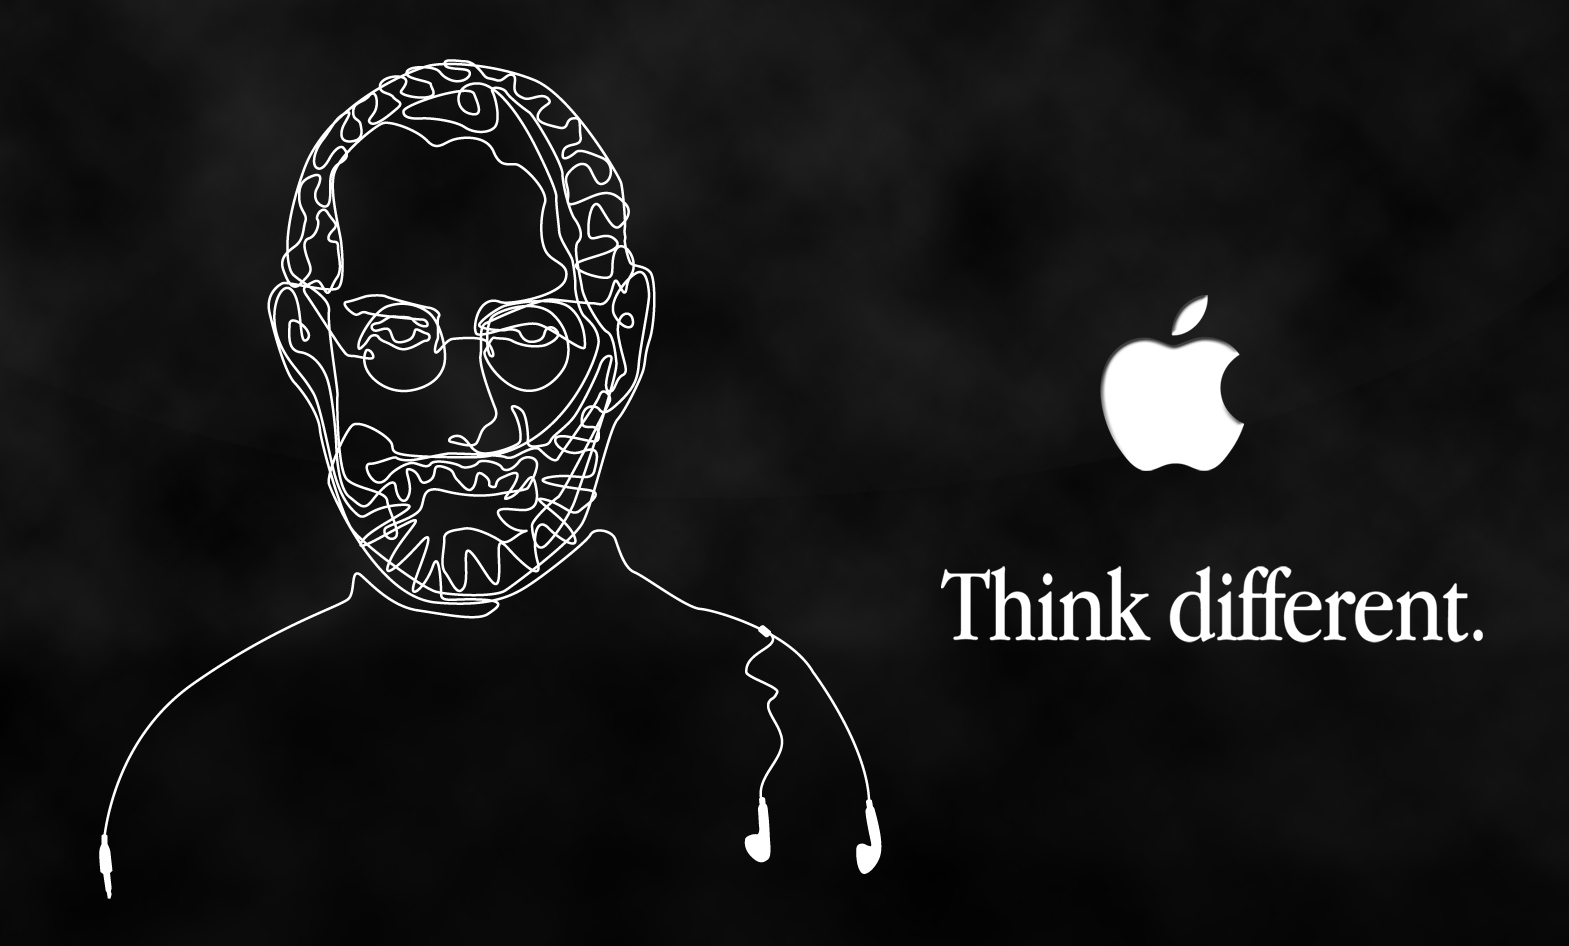 apple inc monochrome Steve HD Wallpaper